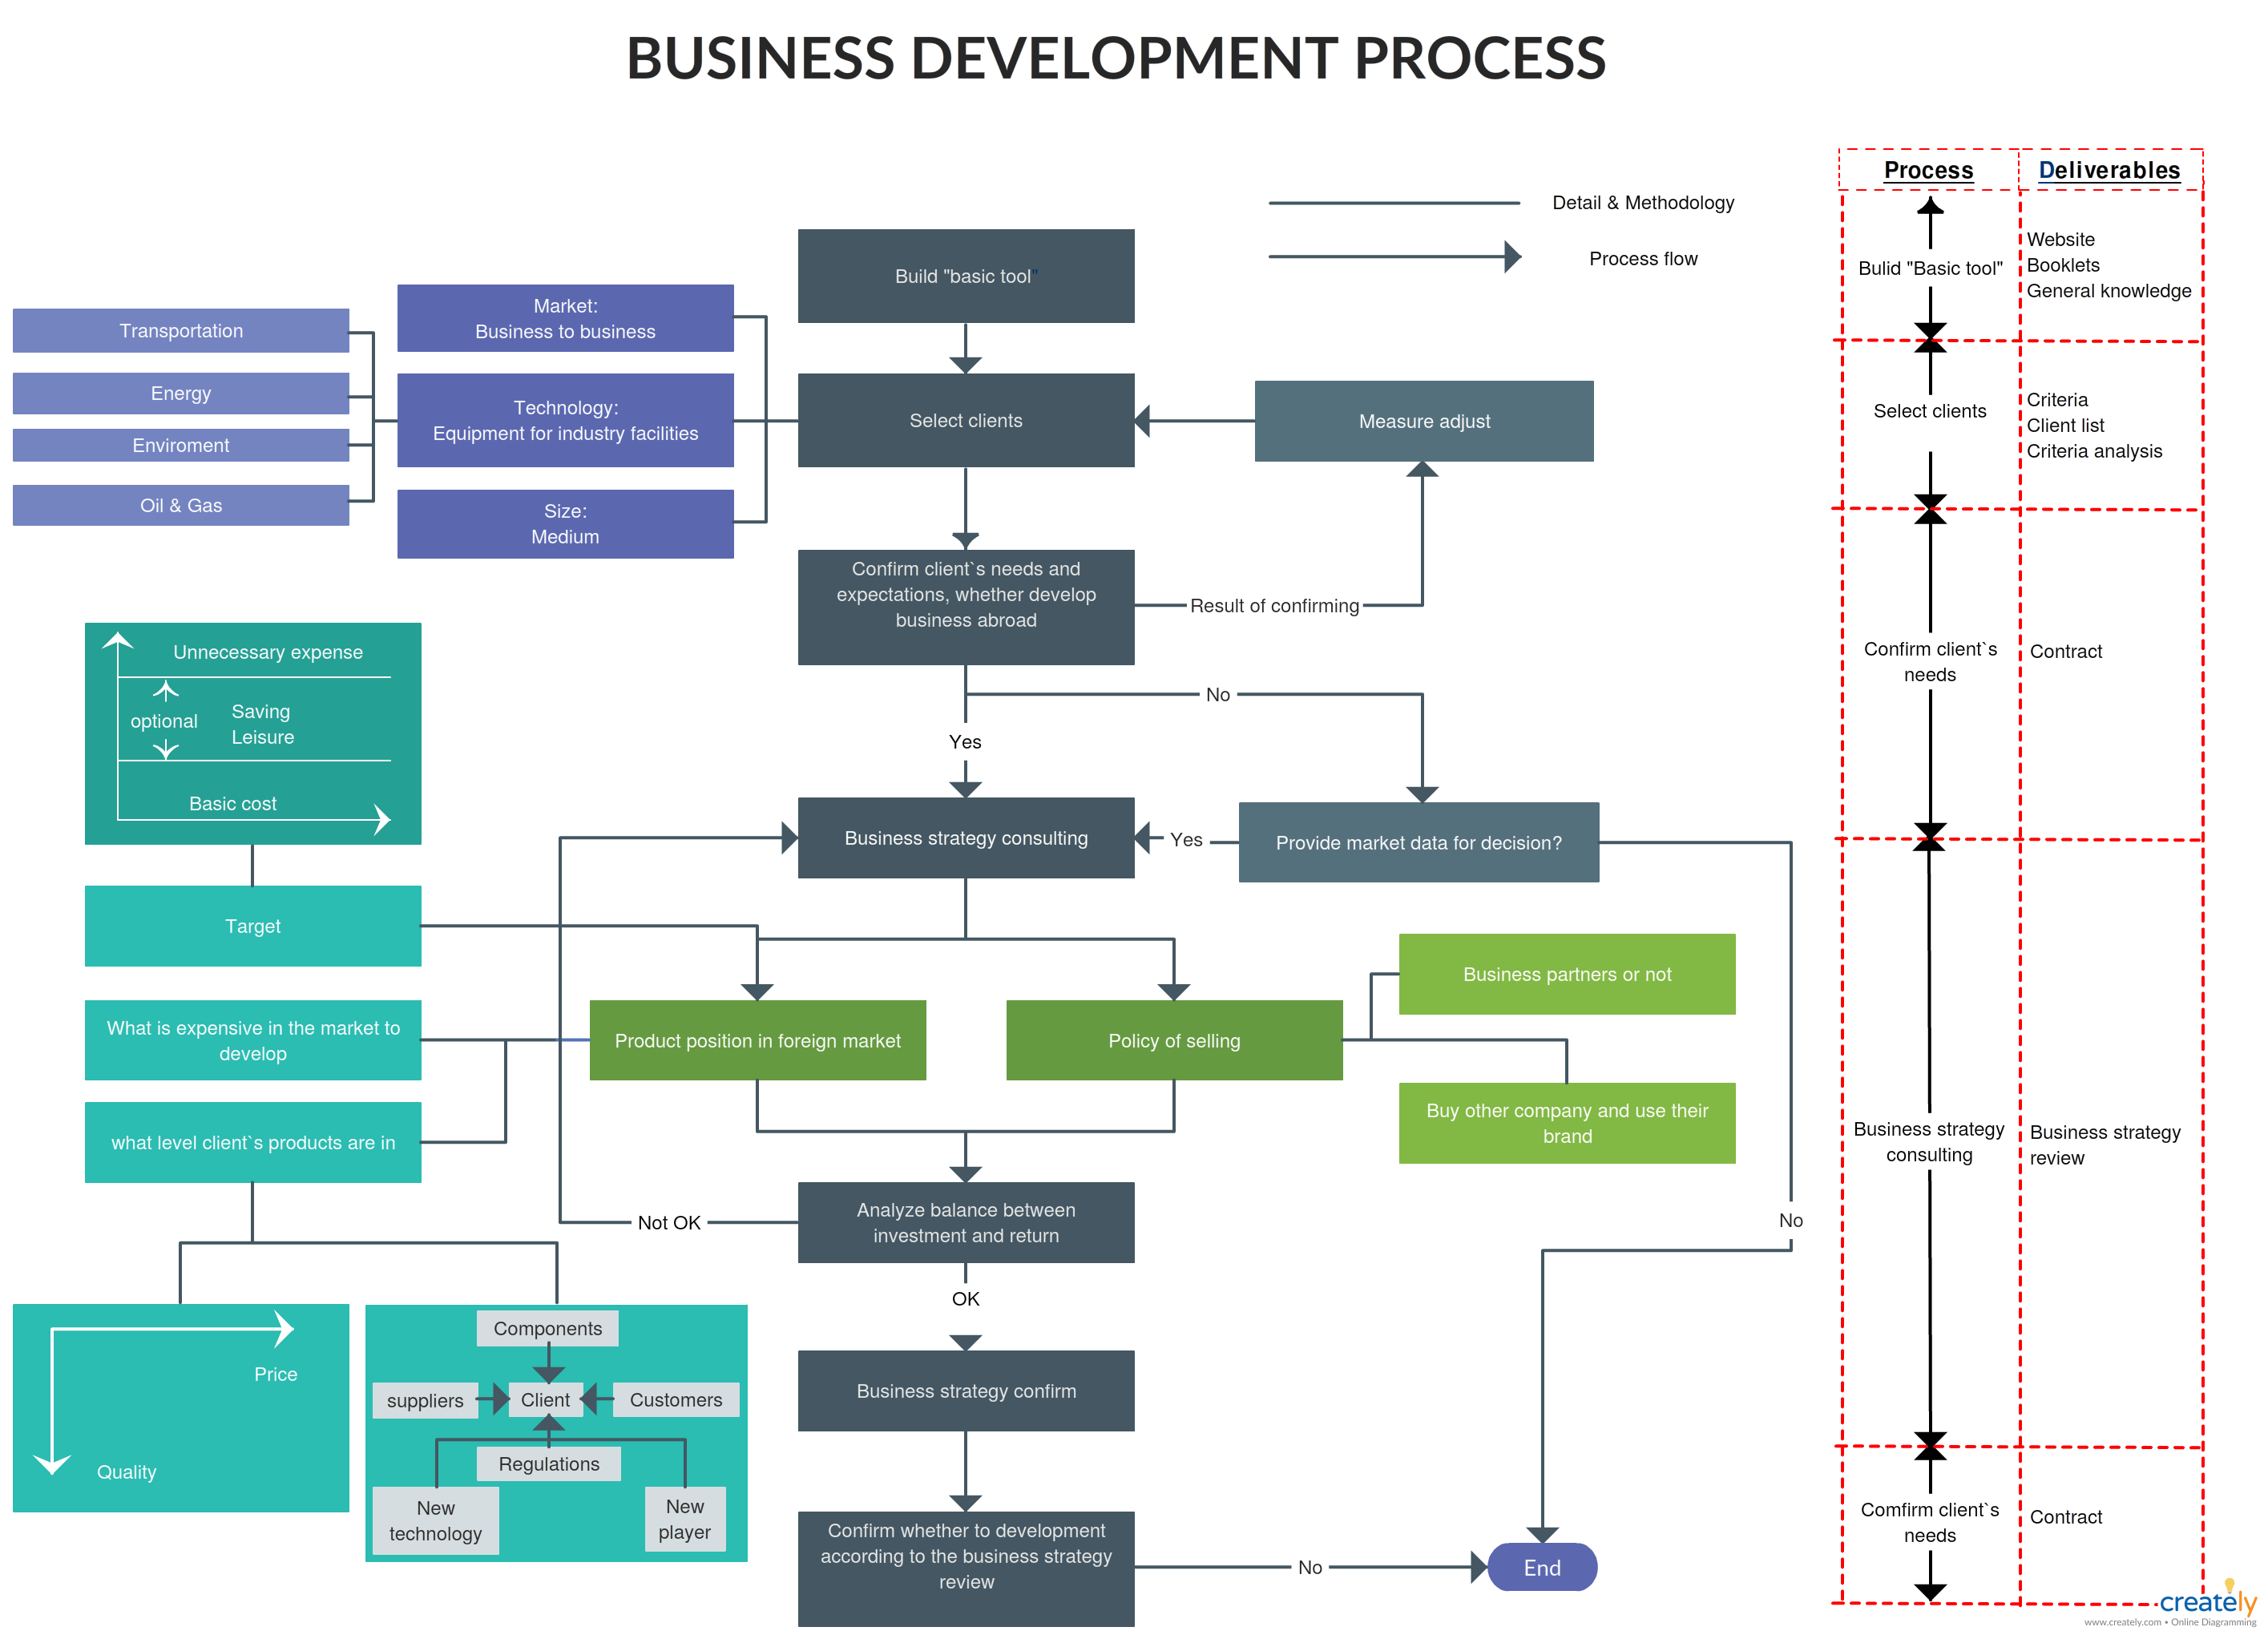 business development process this diagram template illustratesbusiness development process this diagram template illustrates business development process flowchart business development process flow can be drawn